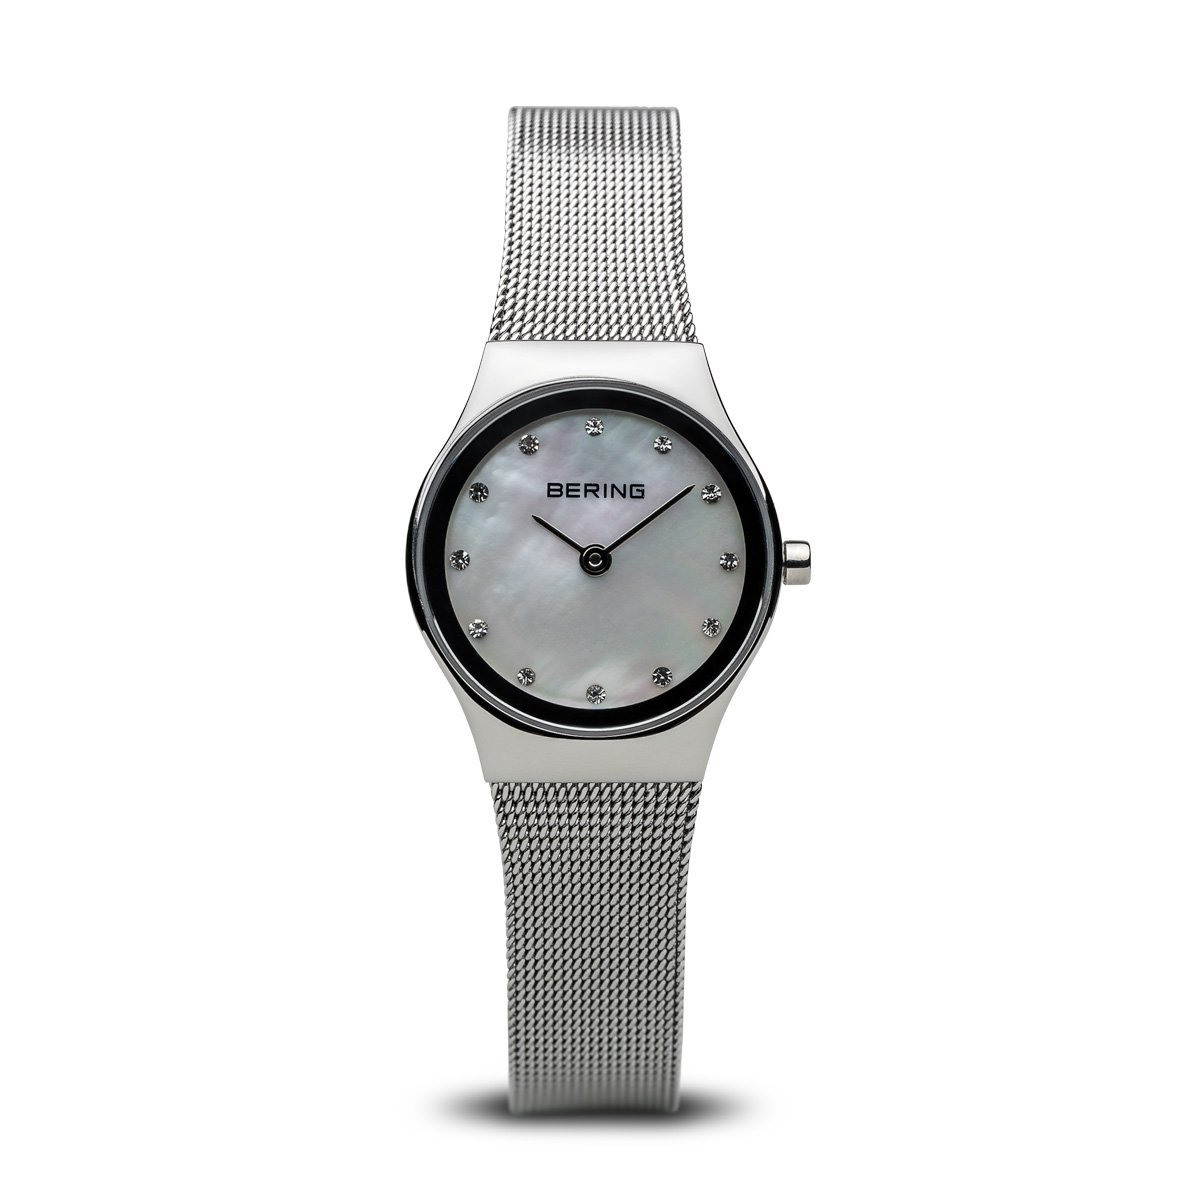 Bering ladies watch with mother of pearl dial and mesh strap